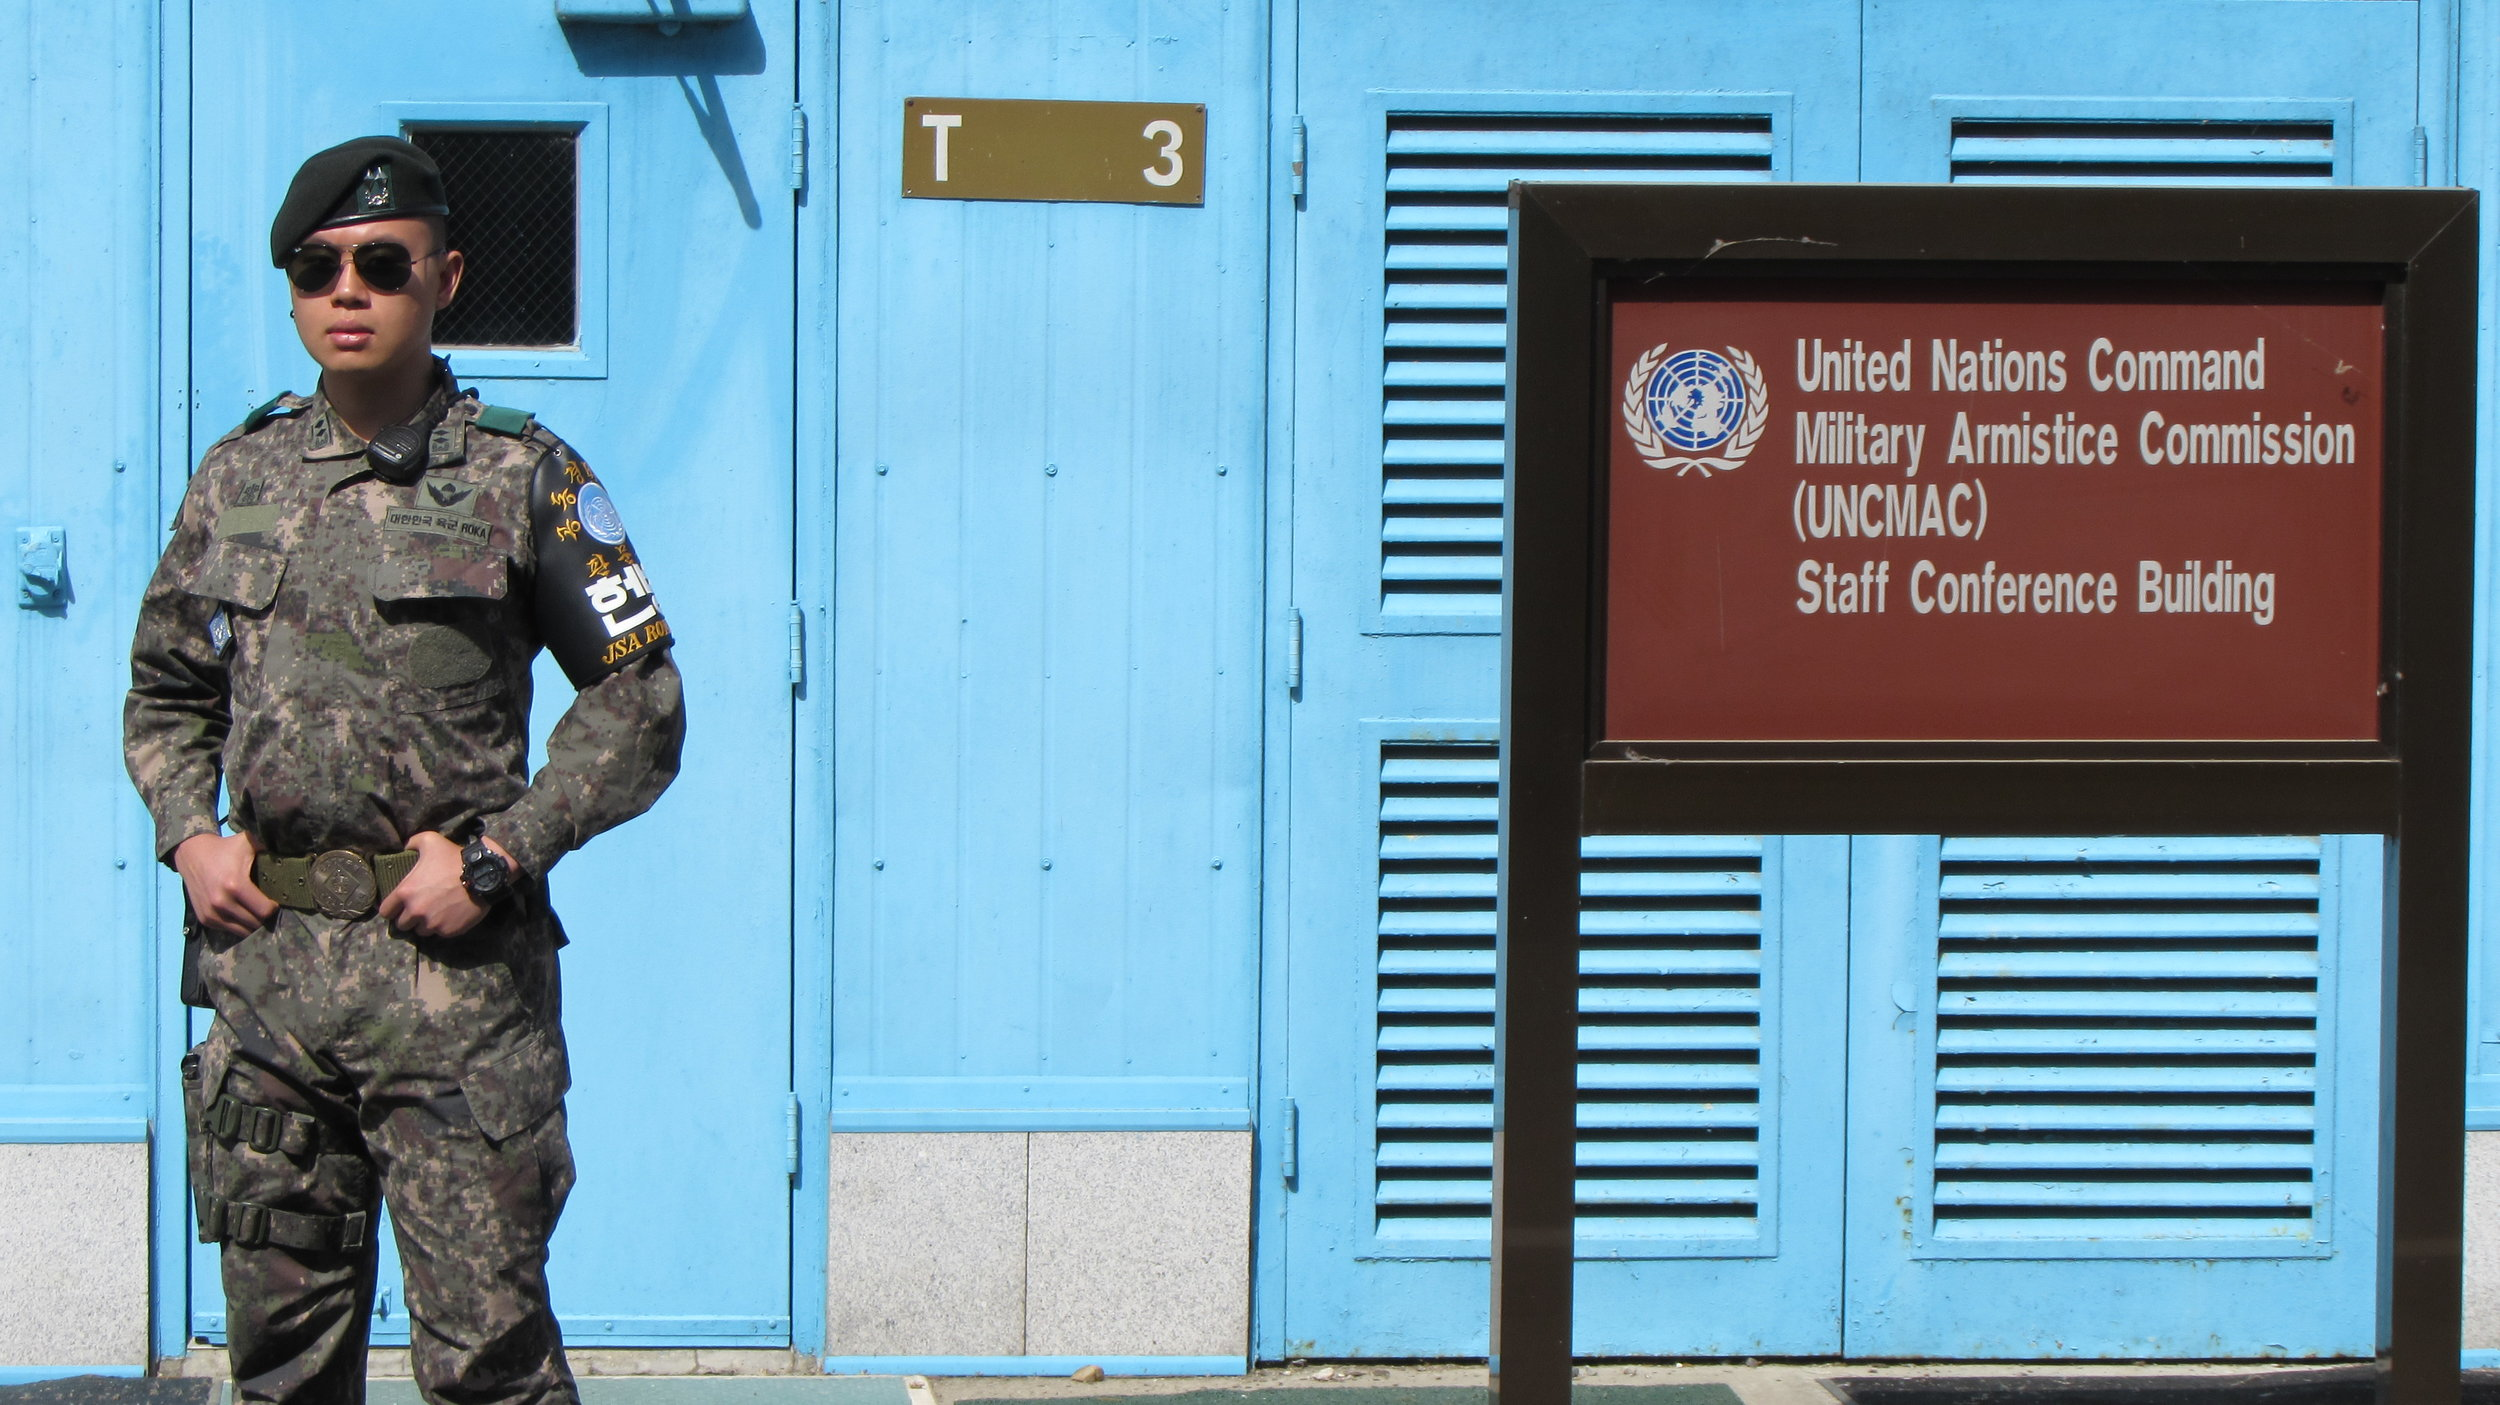 United Nations (South Korean) soldier standing guard